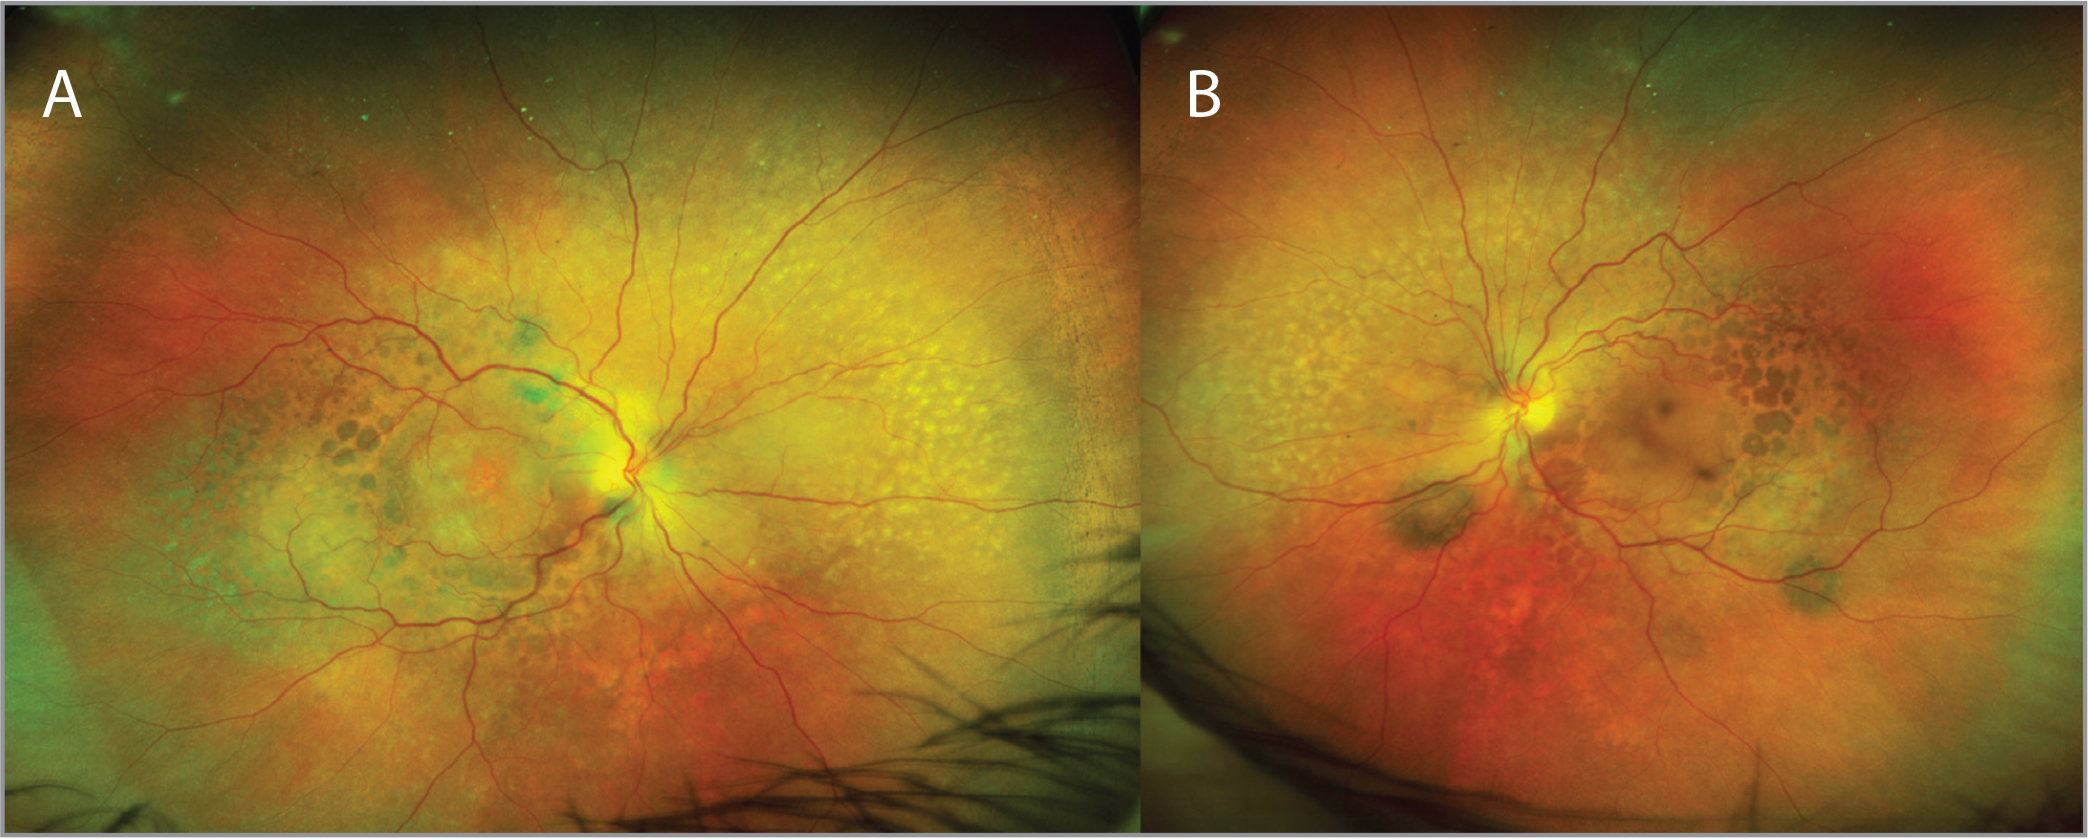 Ultra-widefield imaging of the right eye (A) and the left eye (B).